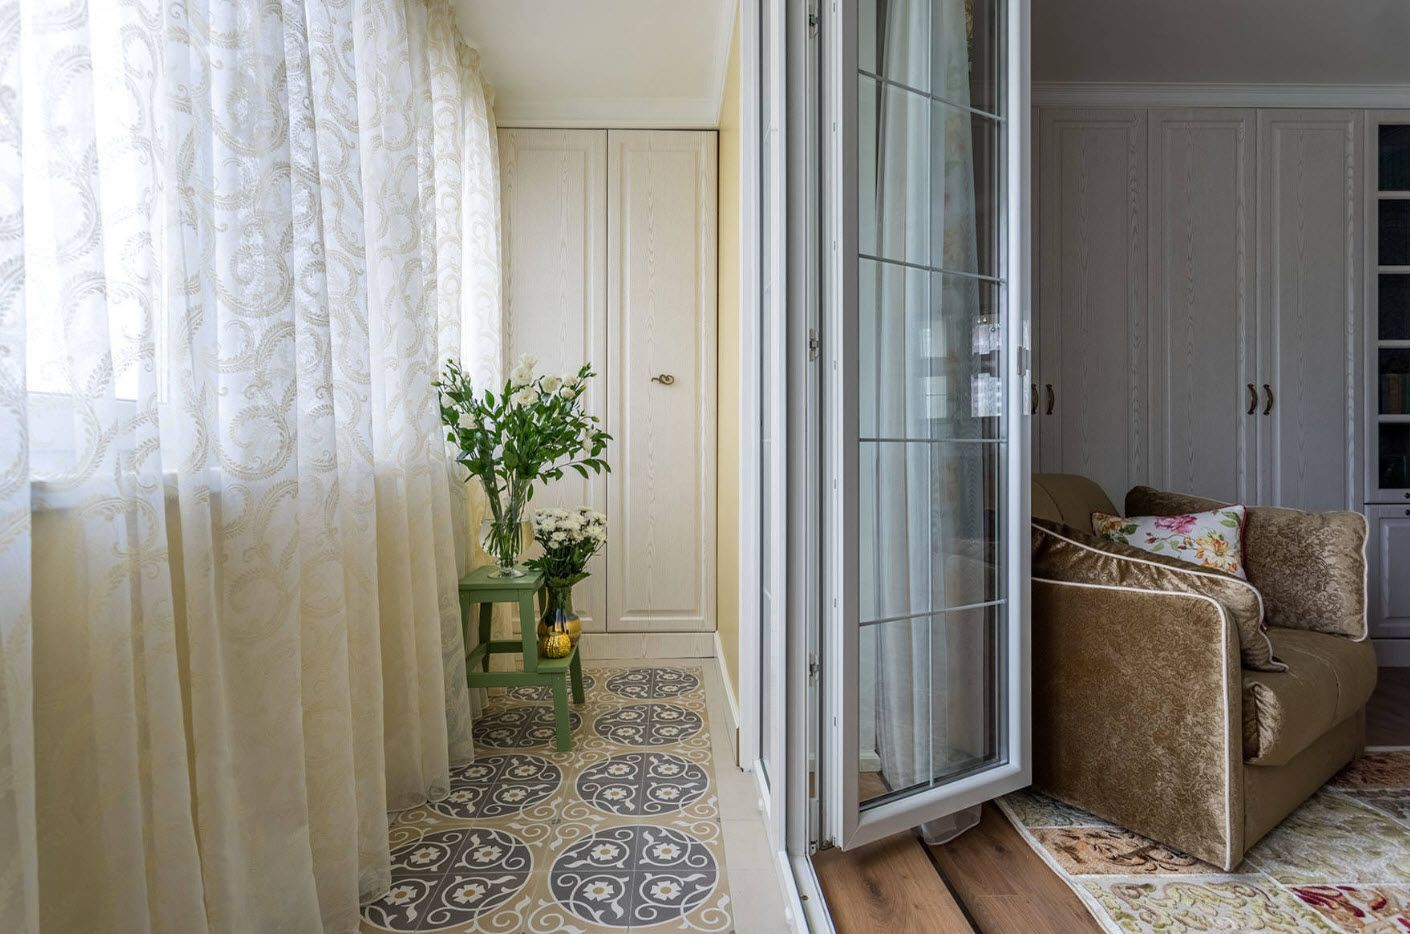 Balcony Curtains: Actual and Fashionable Decoration Ideas. Tulle at the windows and carpet at the floor of contemporary styled area